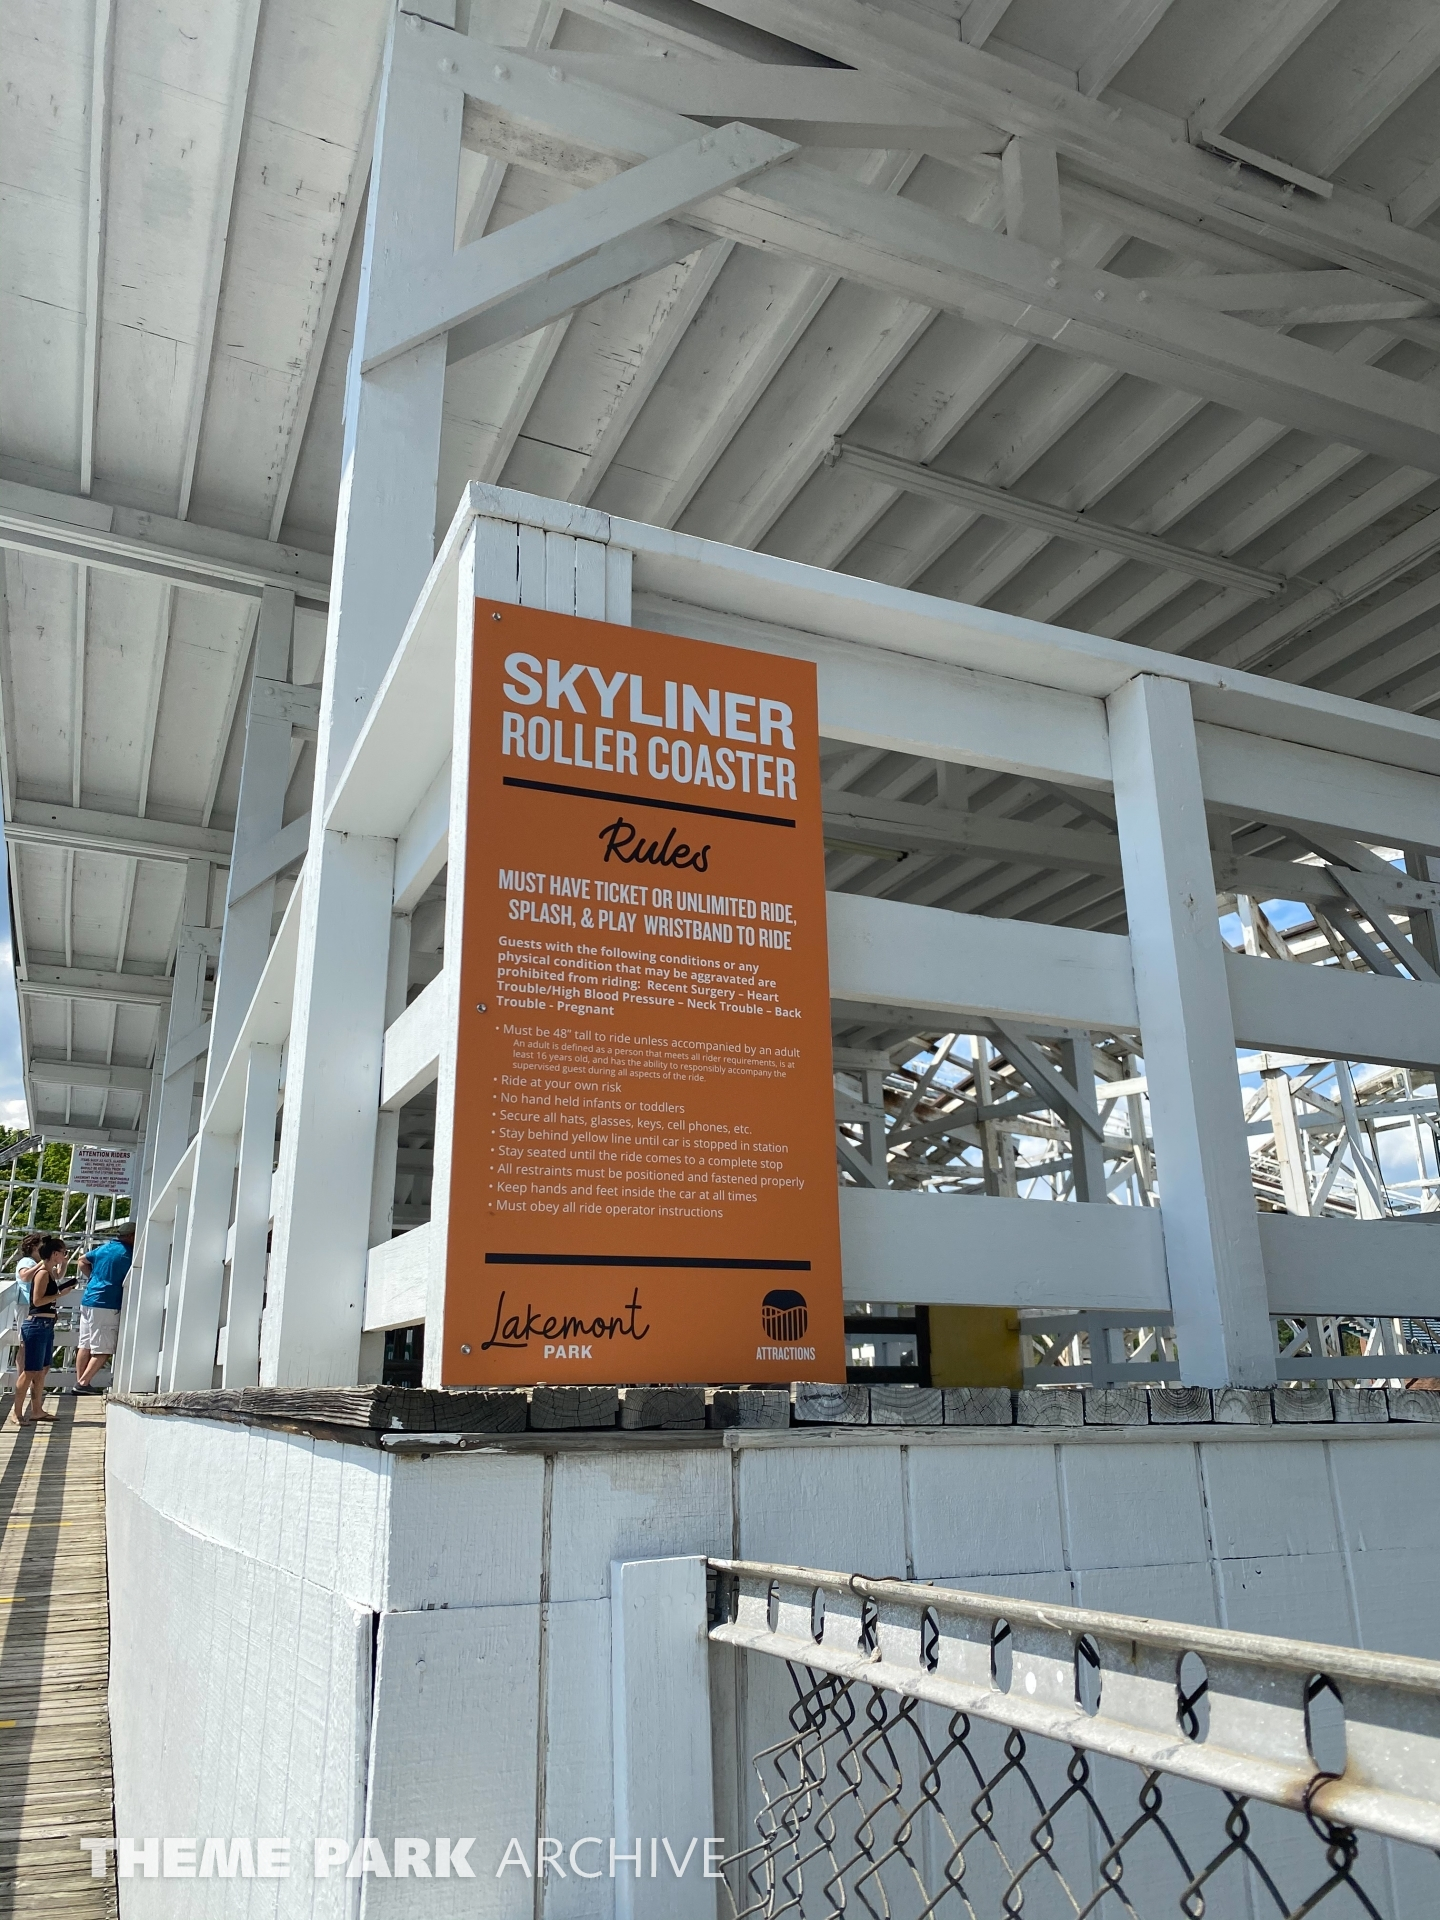 Skyliner at Lakemont Park